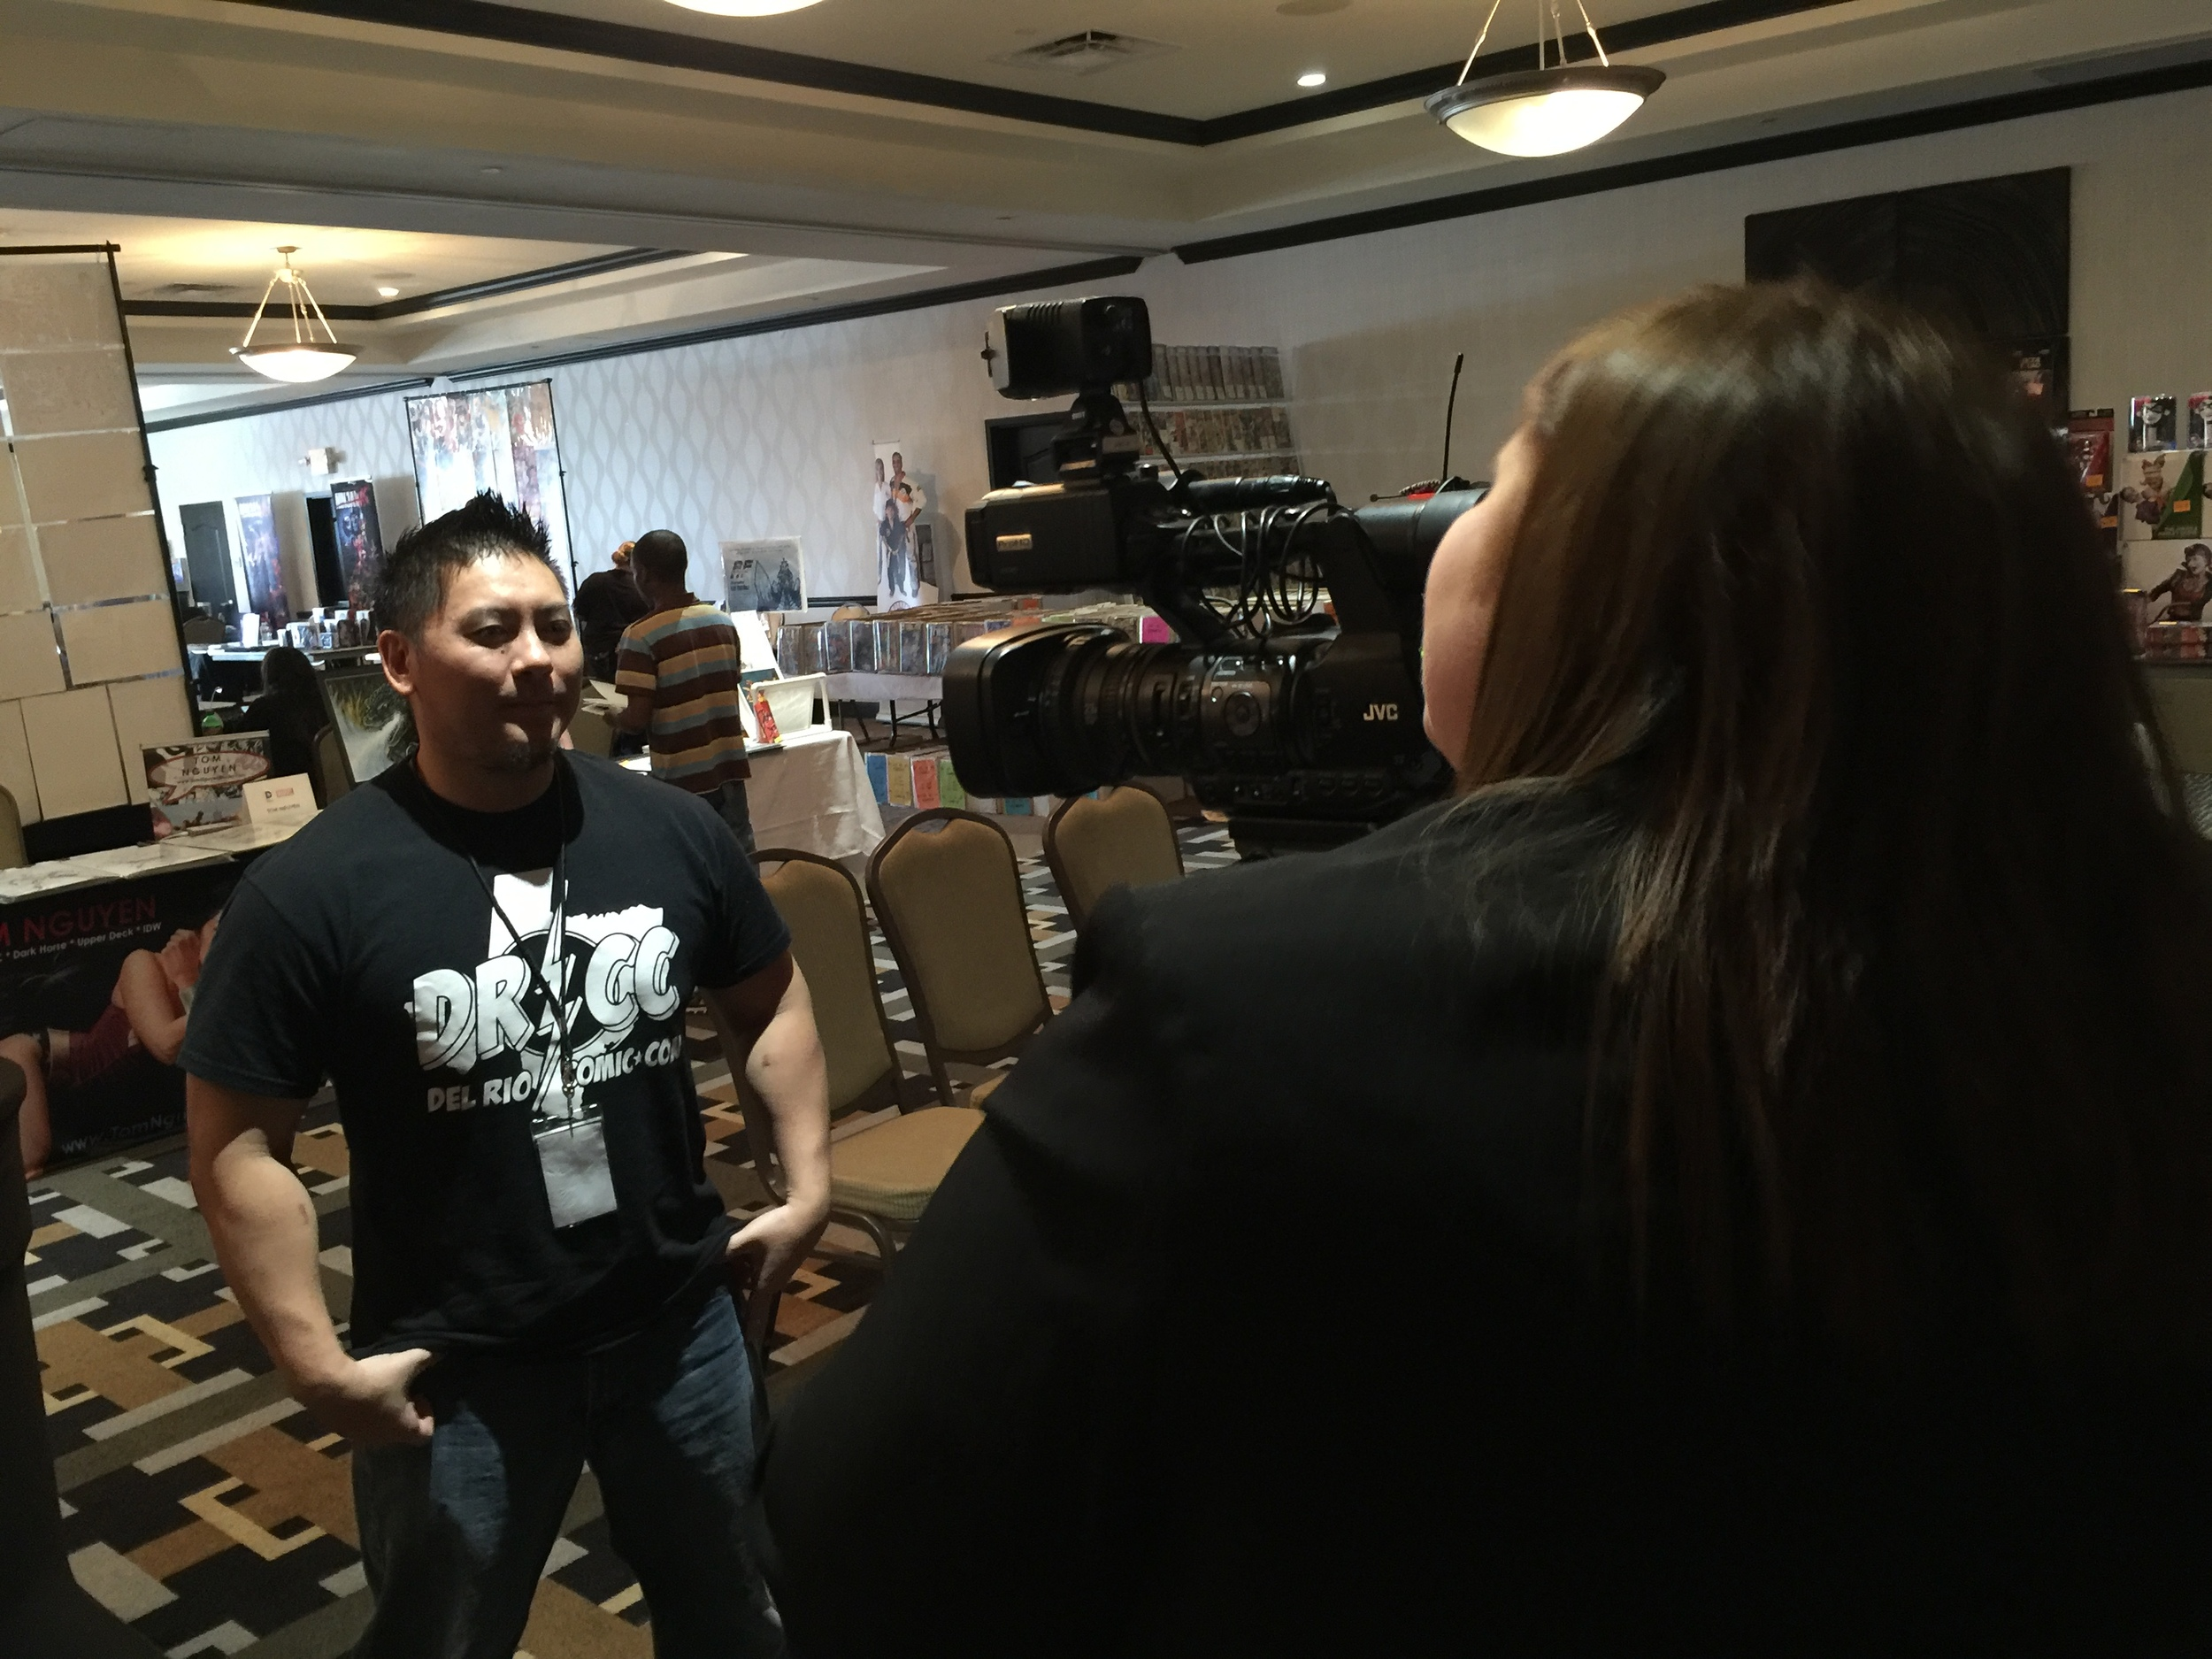 Some loser getting interviewed by the news...